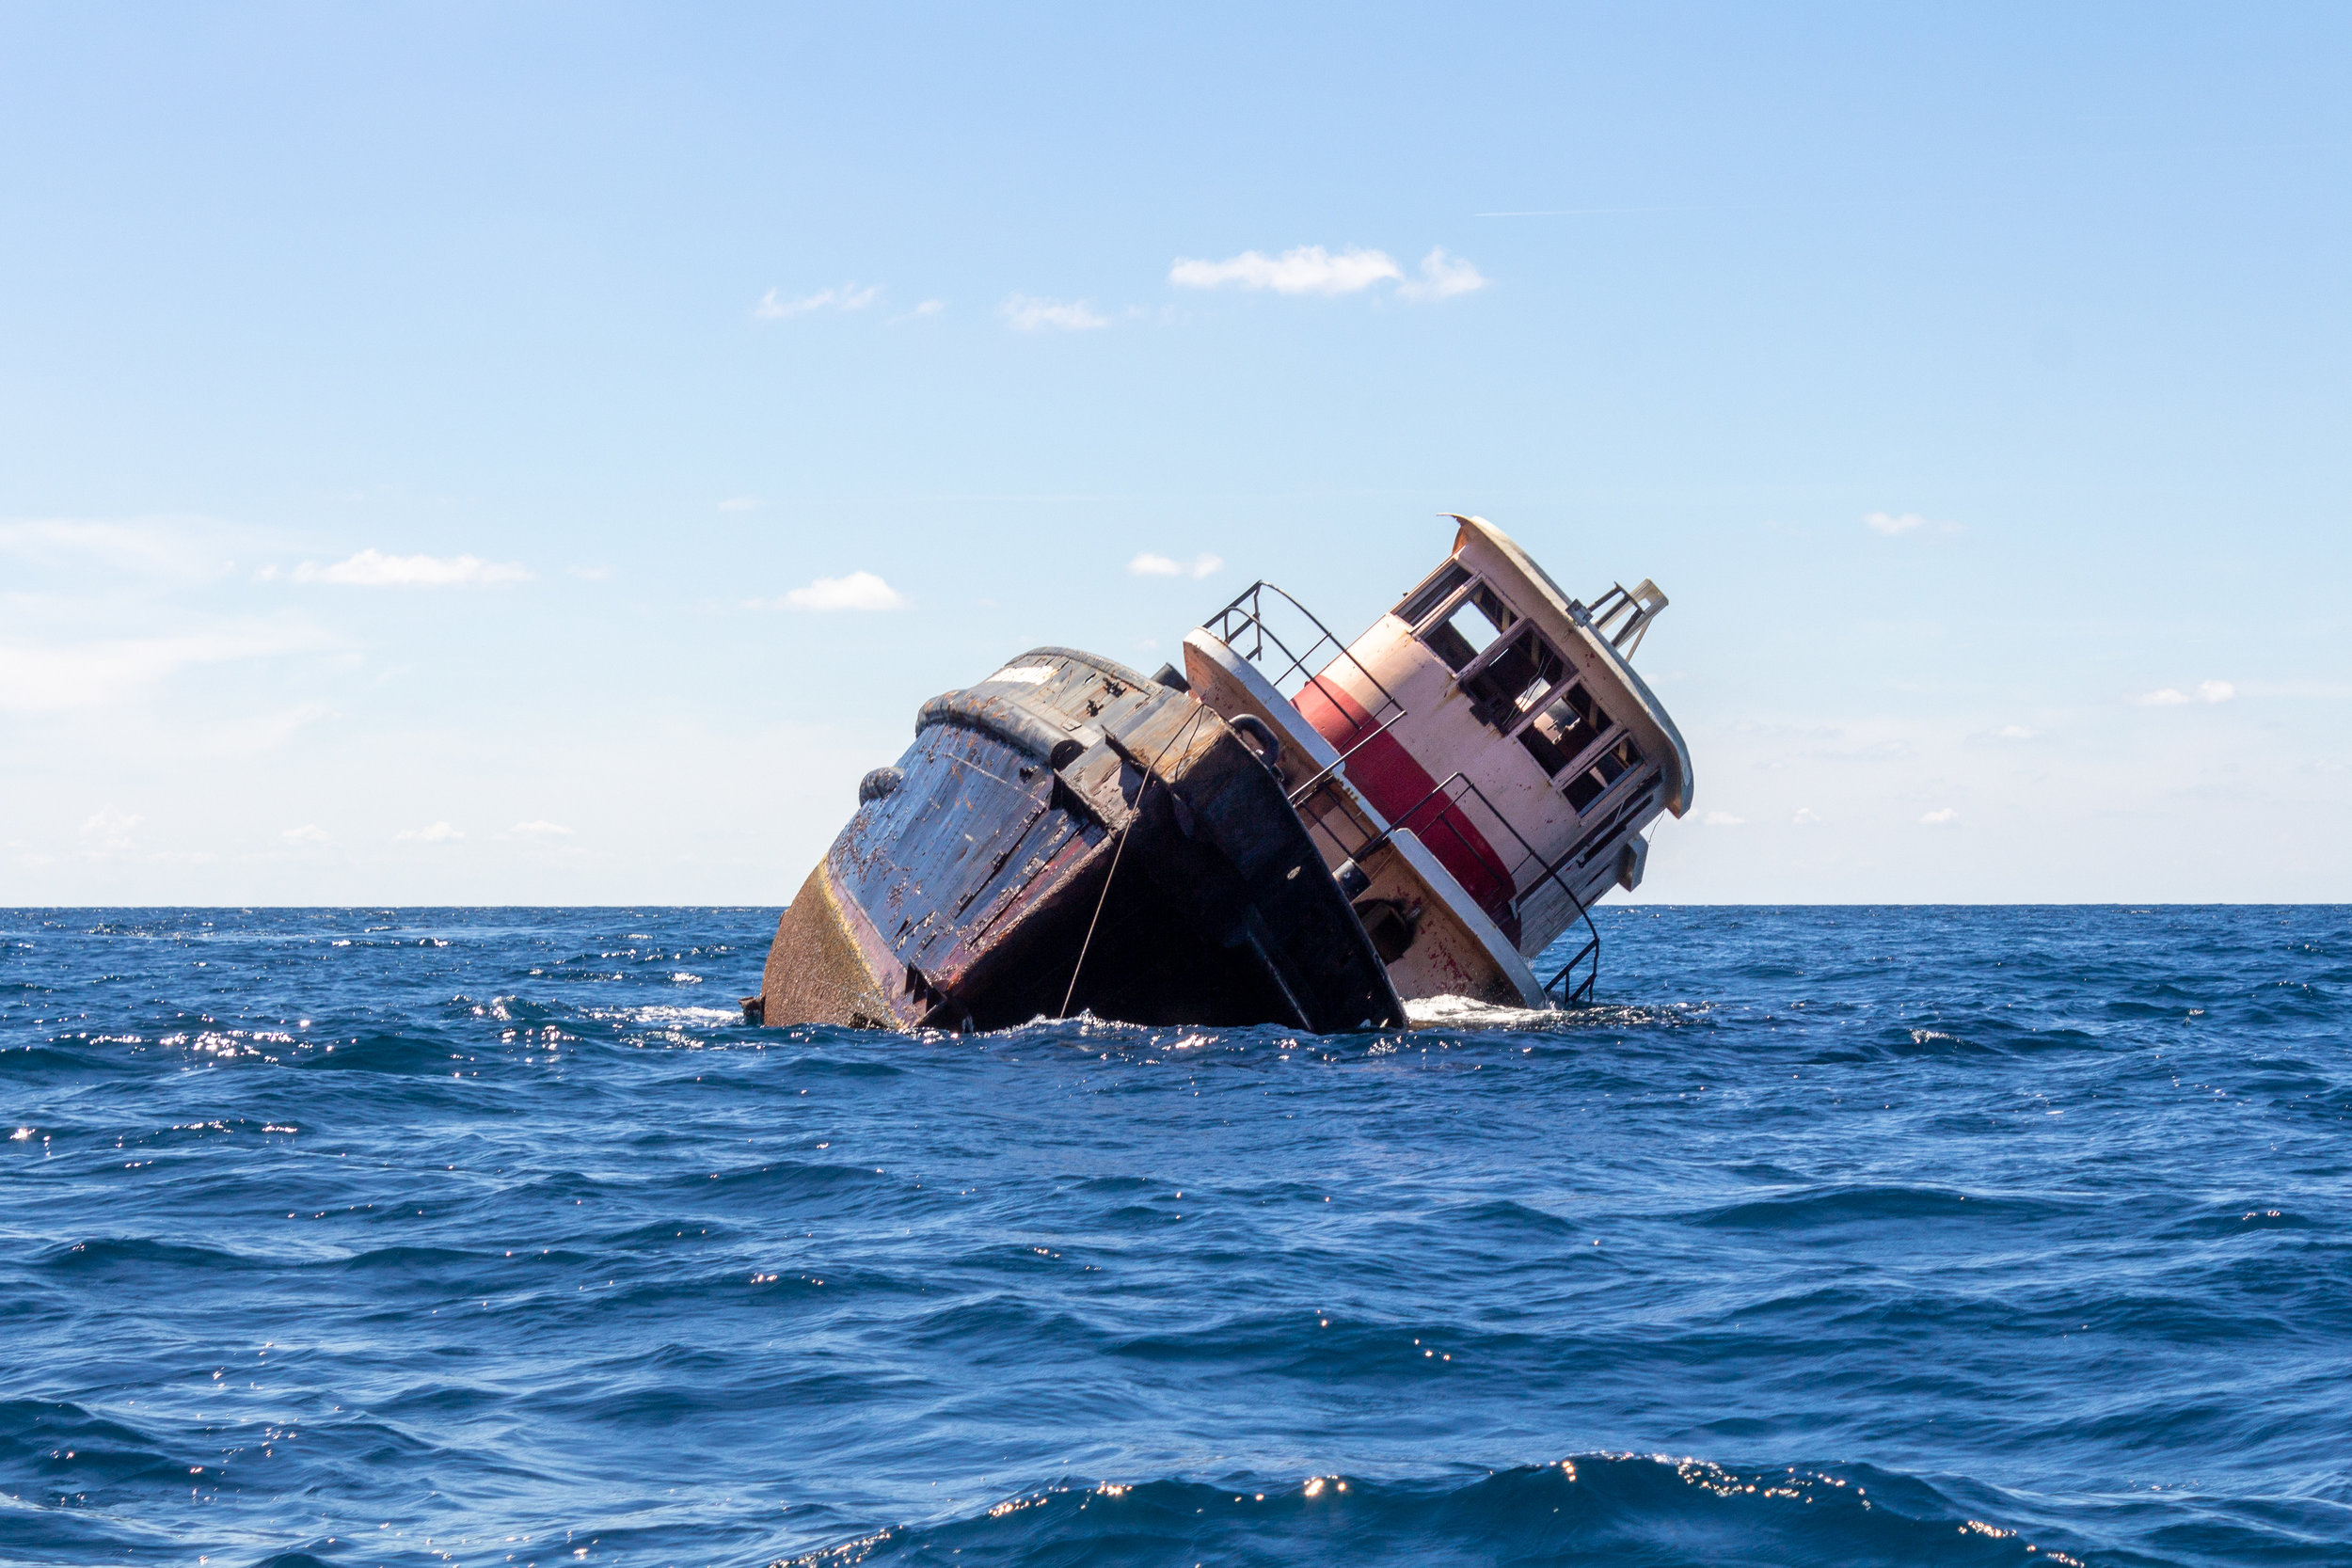 Recently, SCDNR's artificial reef team sunk an old tug boat at Vermilion Reef, 30 miles off the coast of Georgetown. (Photo: Emma Berry/SCDNR)